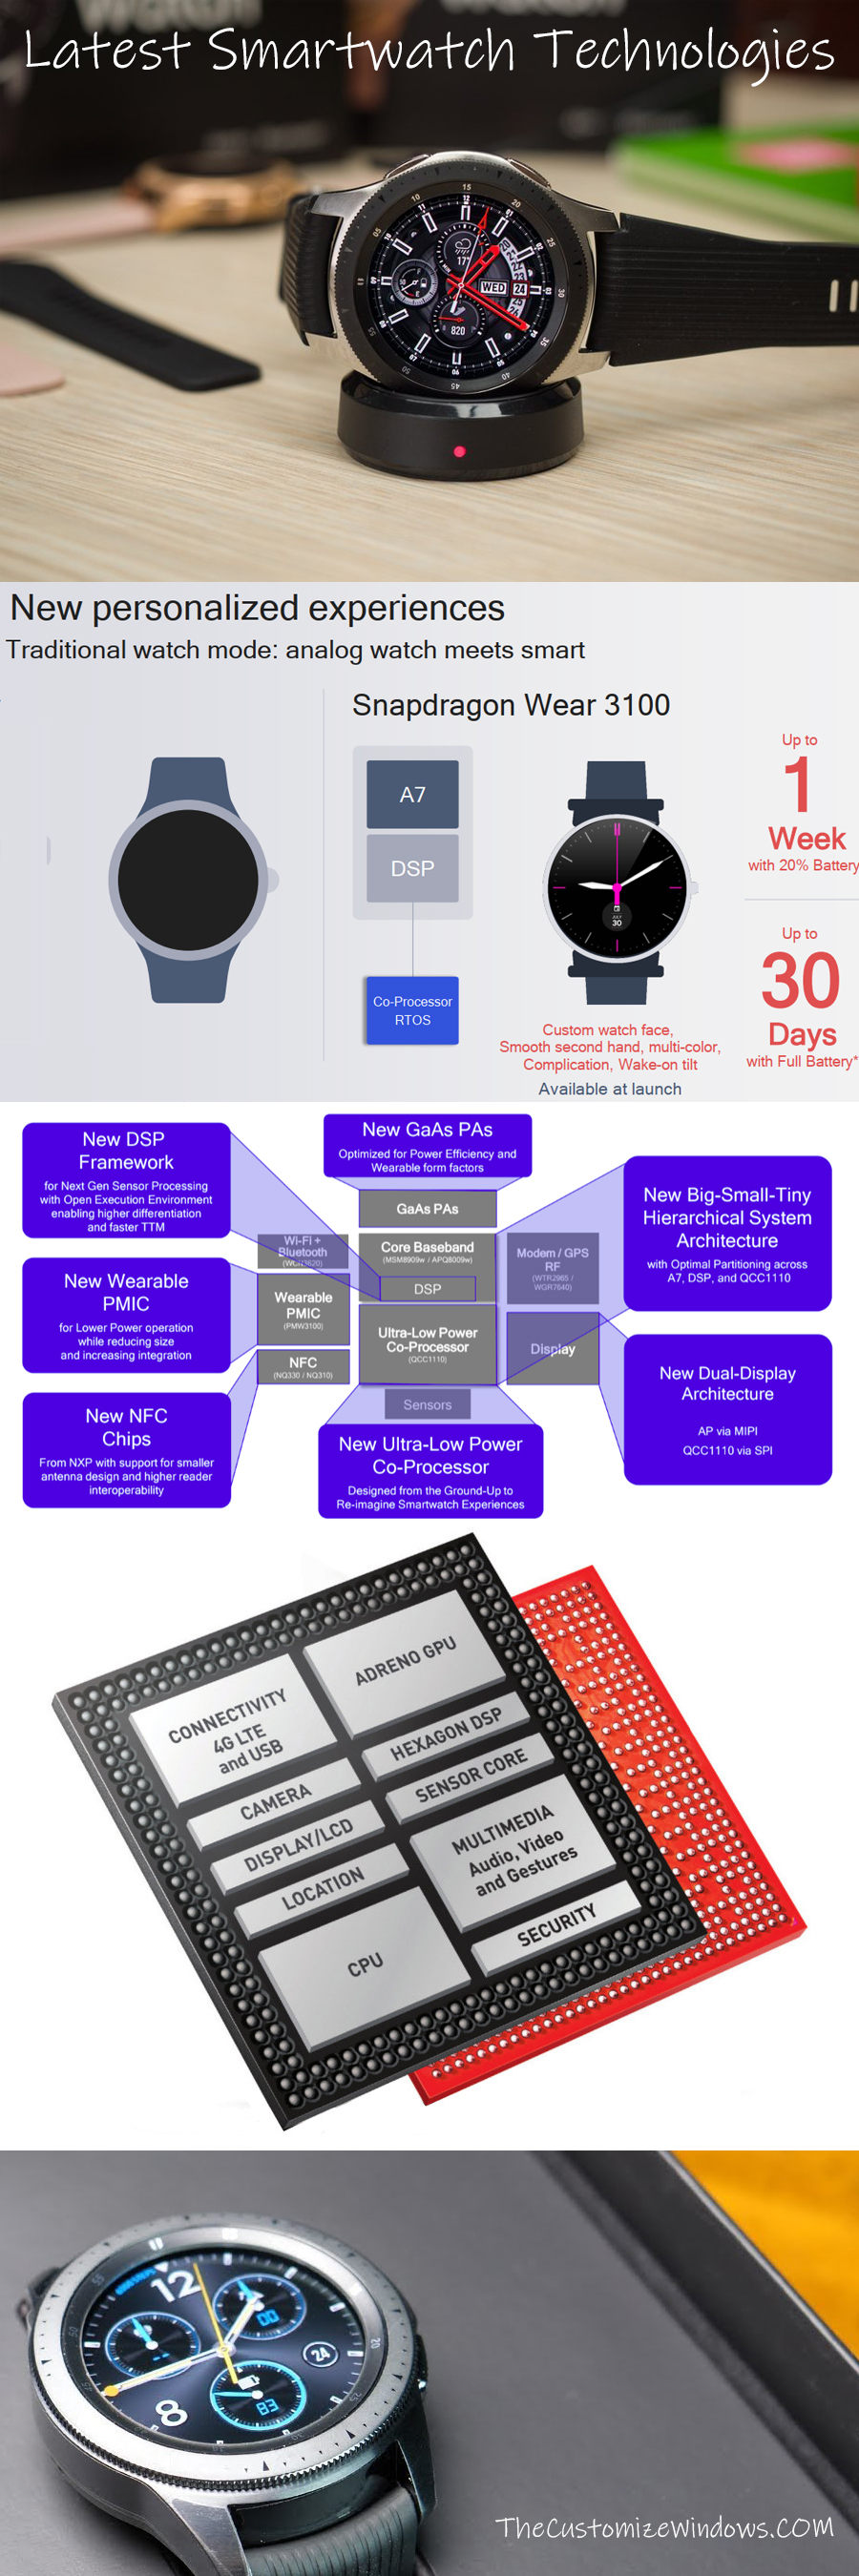 Latest Smartwatch Technologies